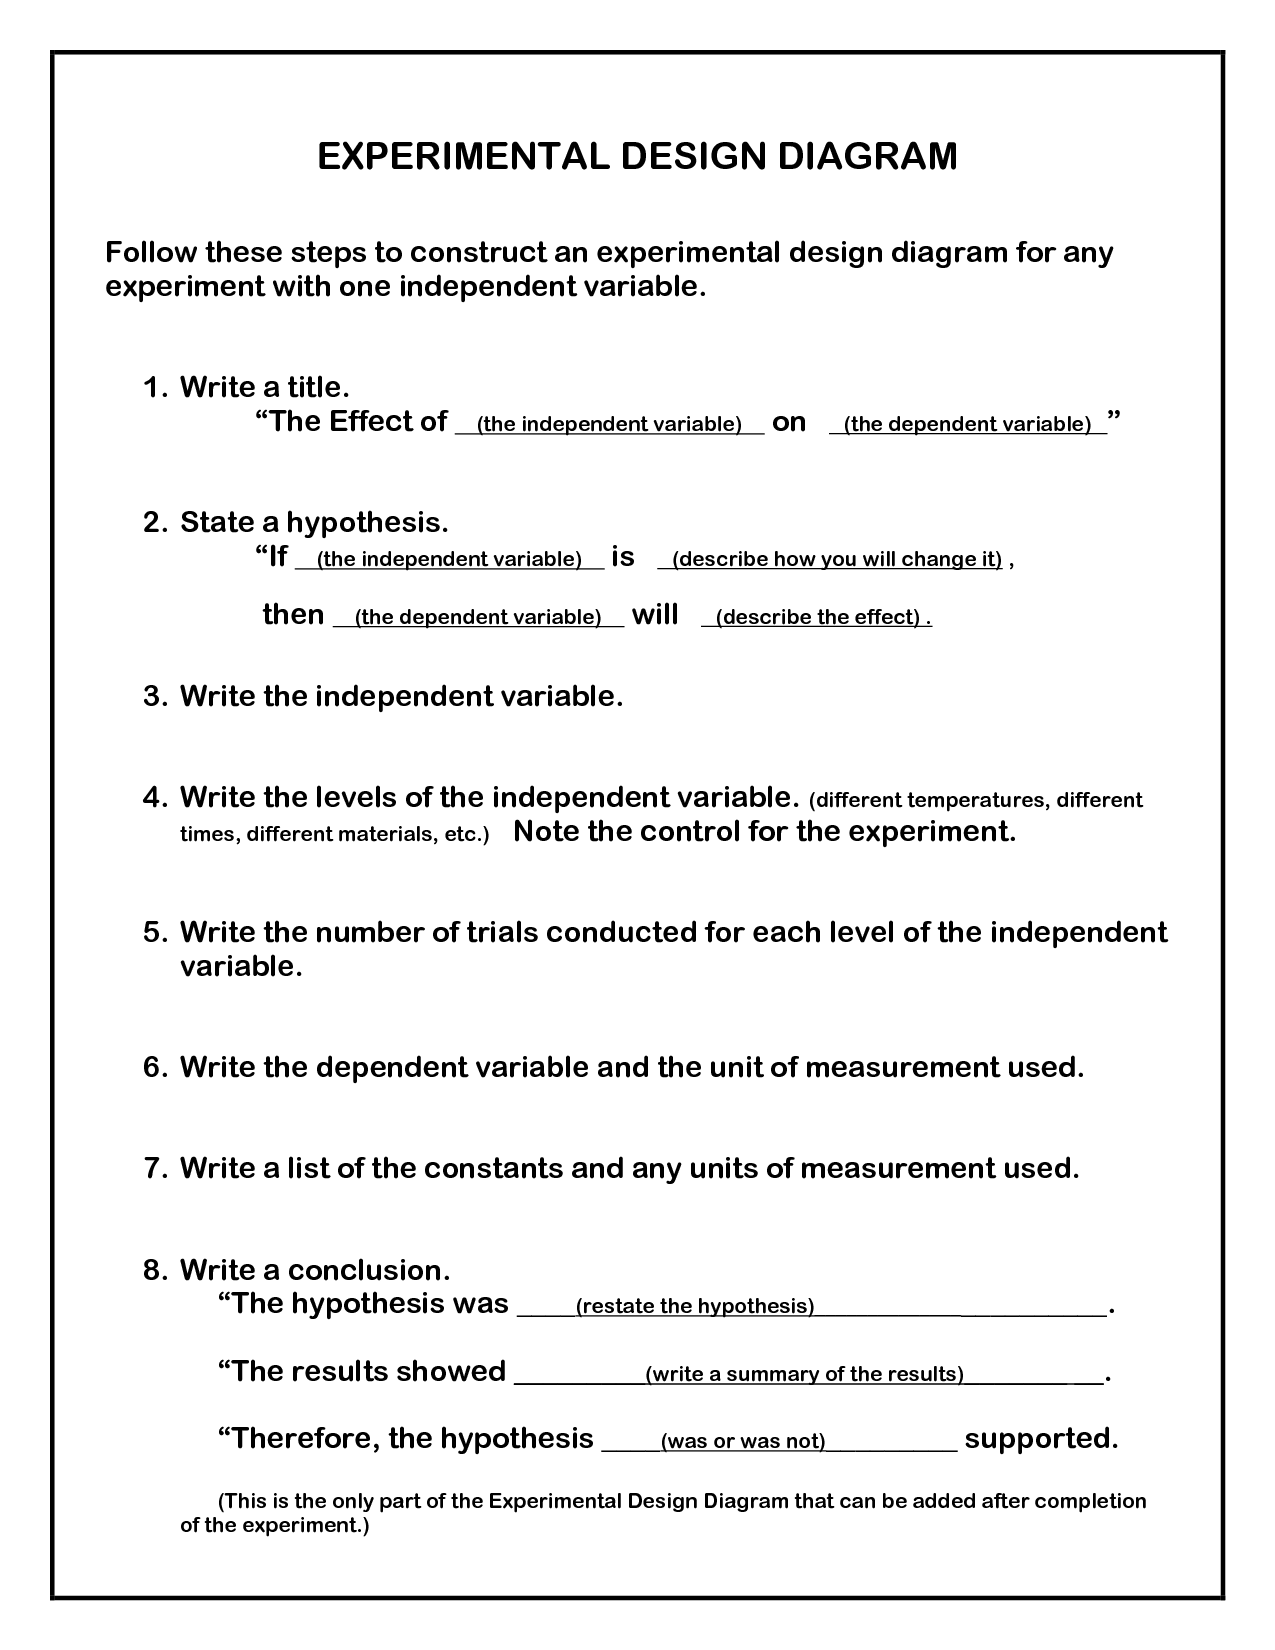 experimental design worksheet scientific method answer key resultinfos. Black Bedroom Furniture Sets. Home Design Ideas